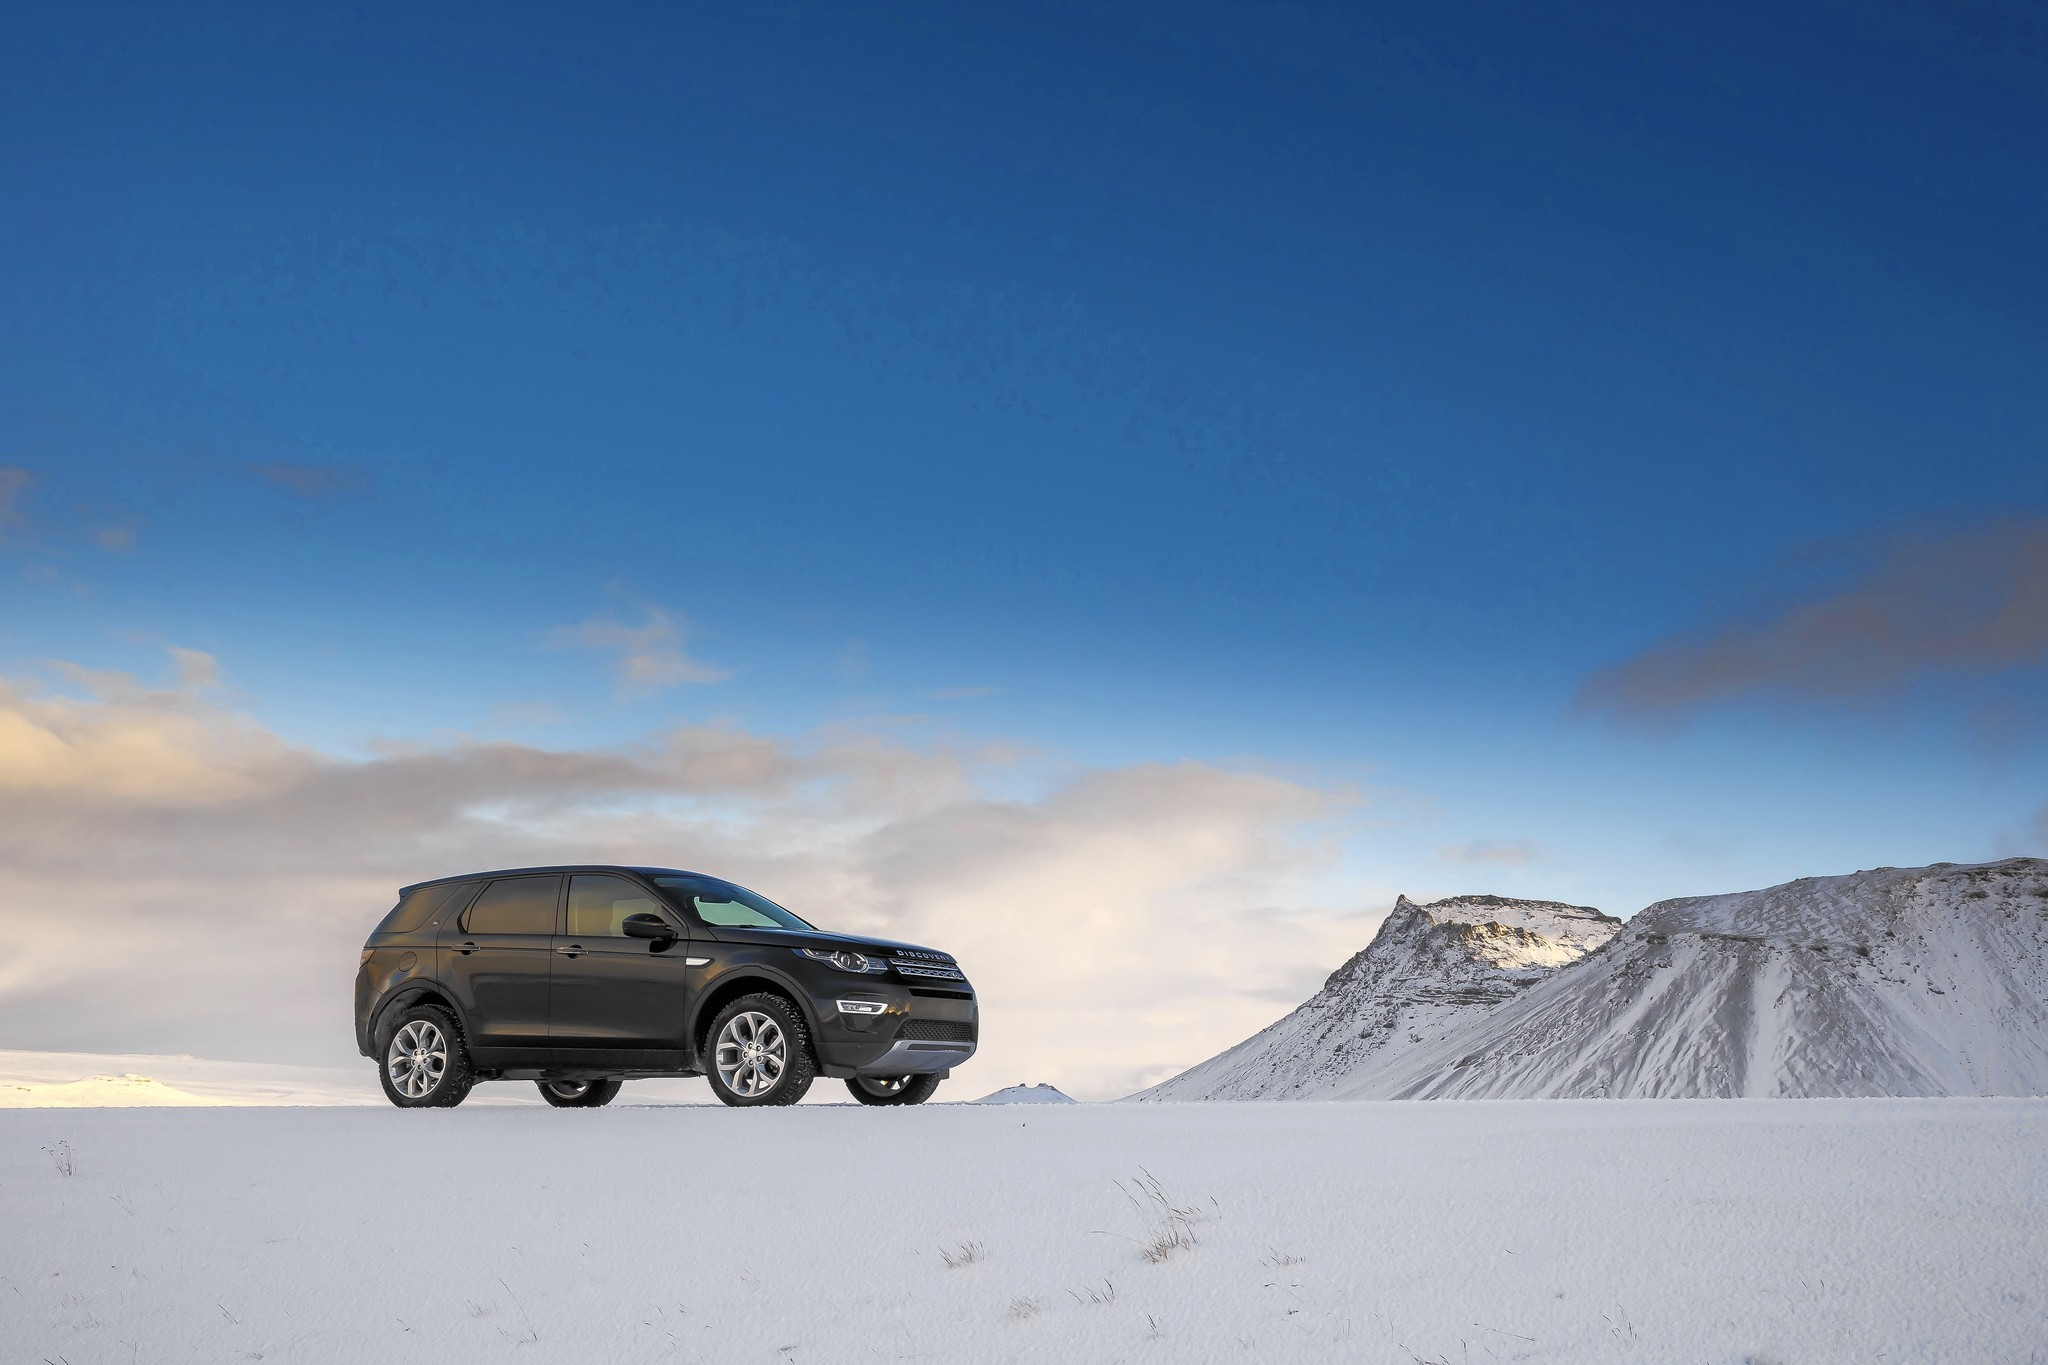 2016 Discovery Sport is the best value in Land Rover lineup